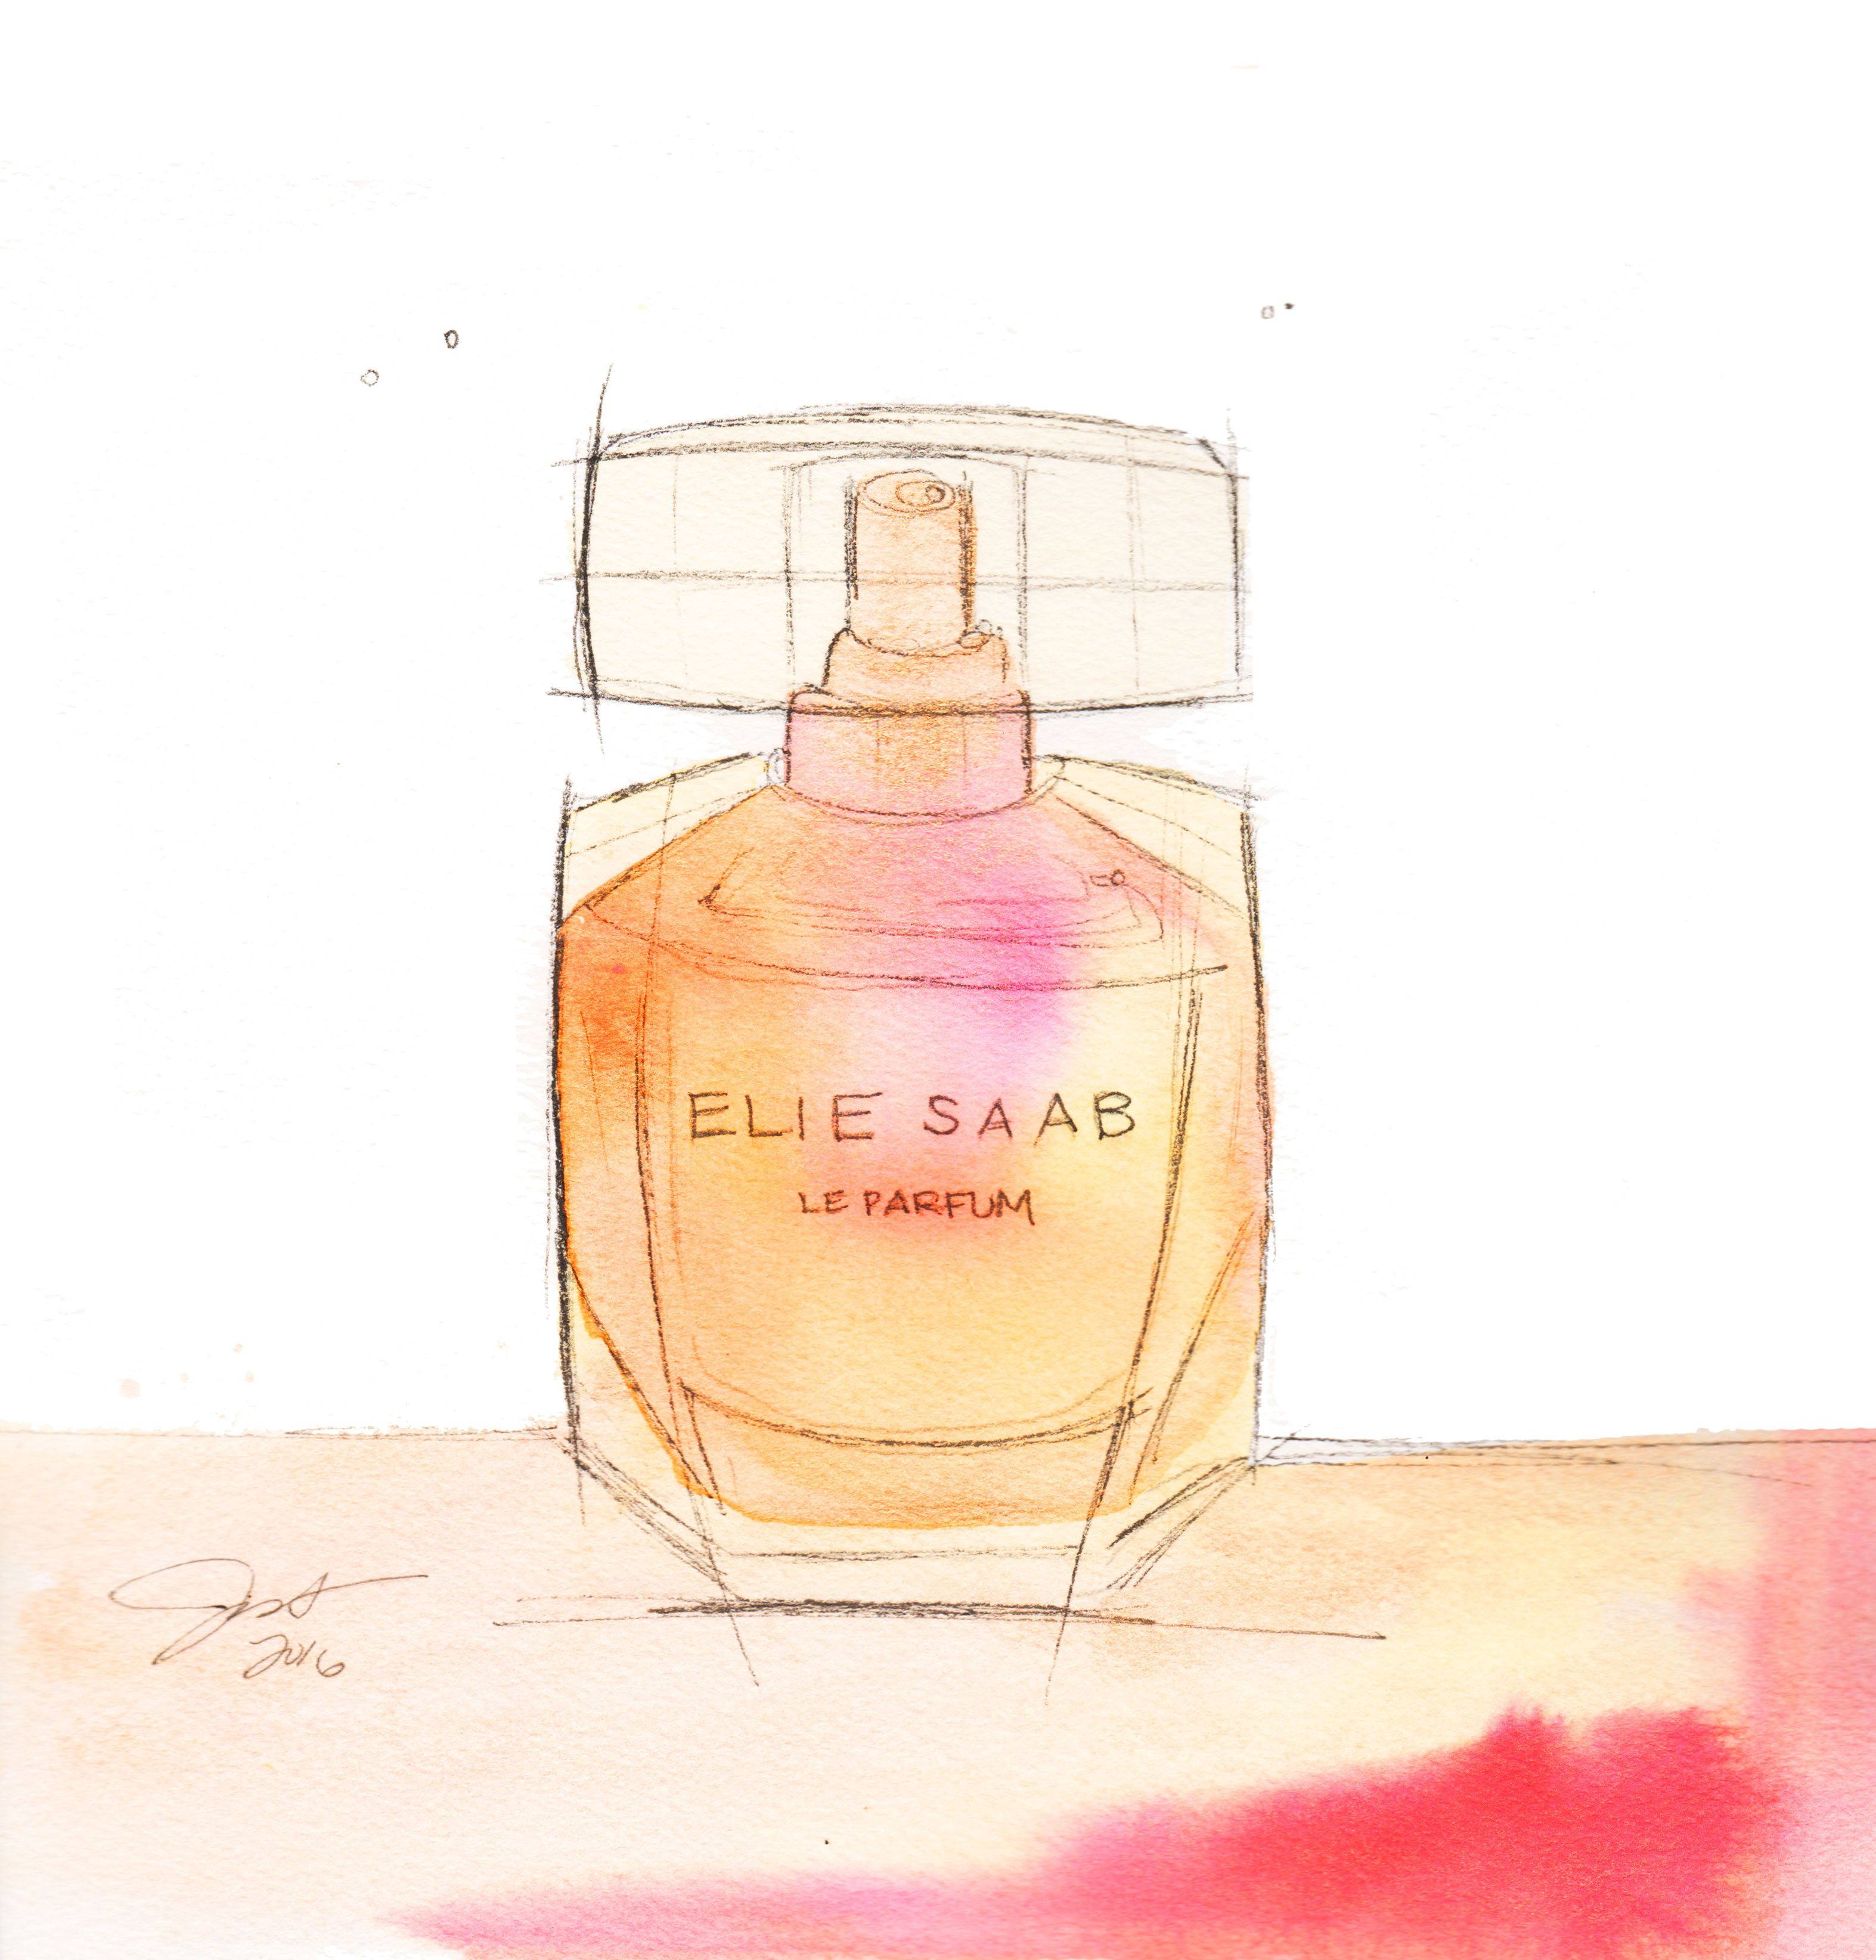 Perfume Noted When Water Colour Illustration Meets The Scent